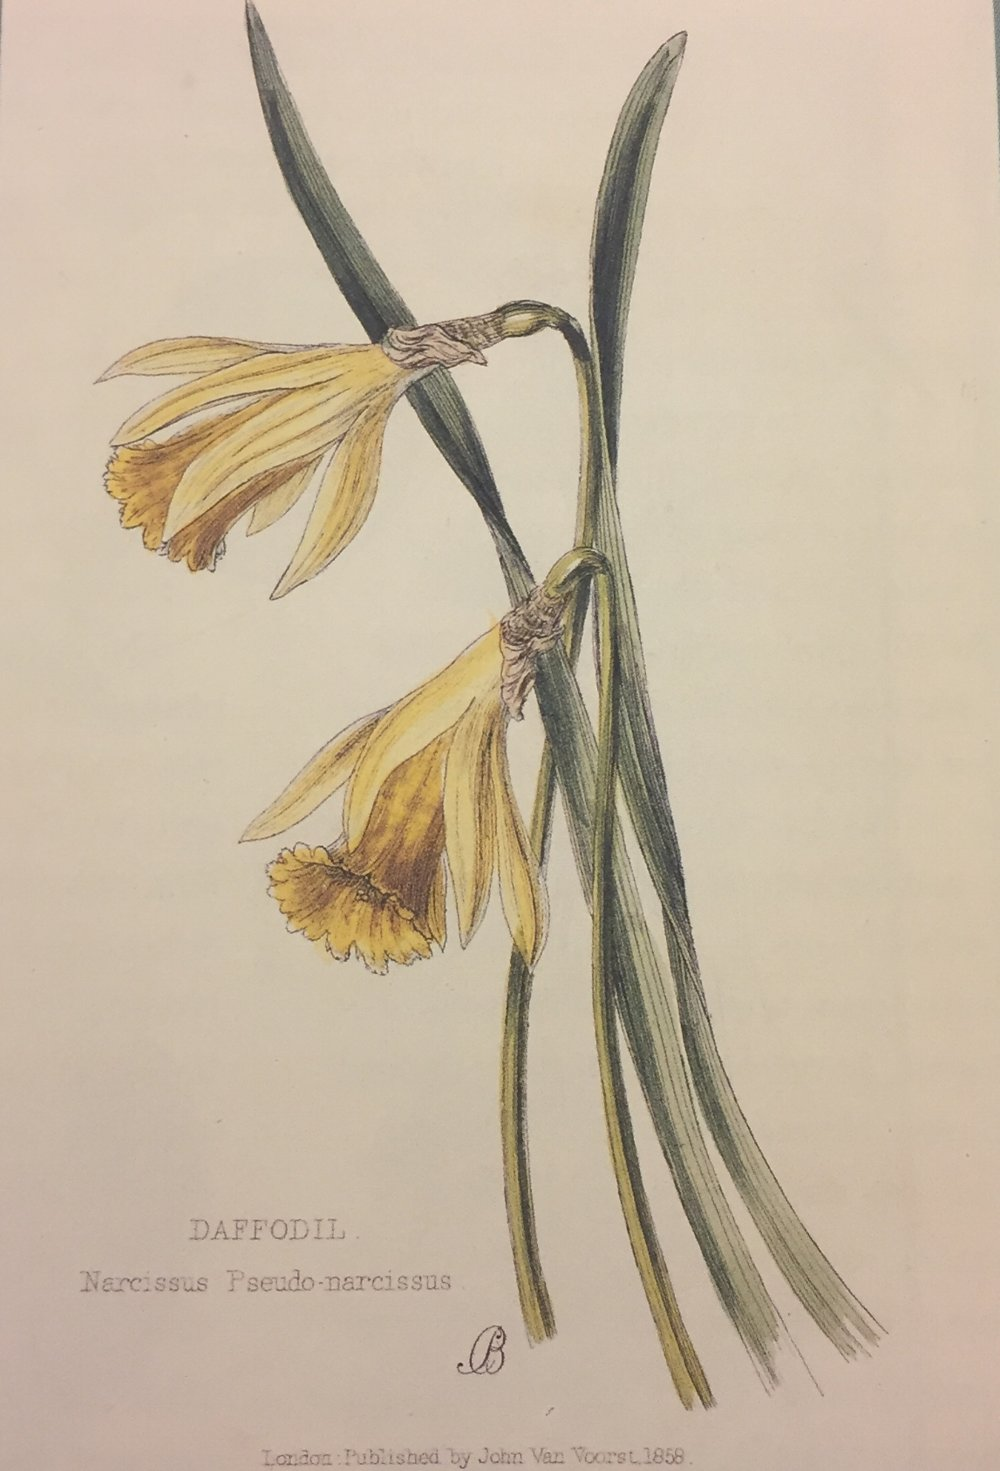 Daffodil. Narcissus Pseudo narcissus. Lady Wilkinson's Weeds & Wildflowers, 1885.